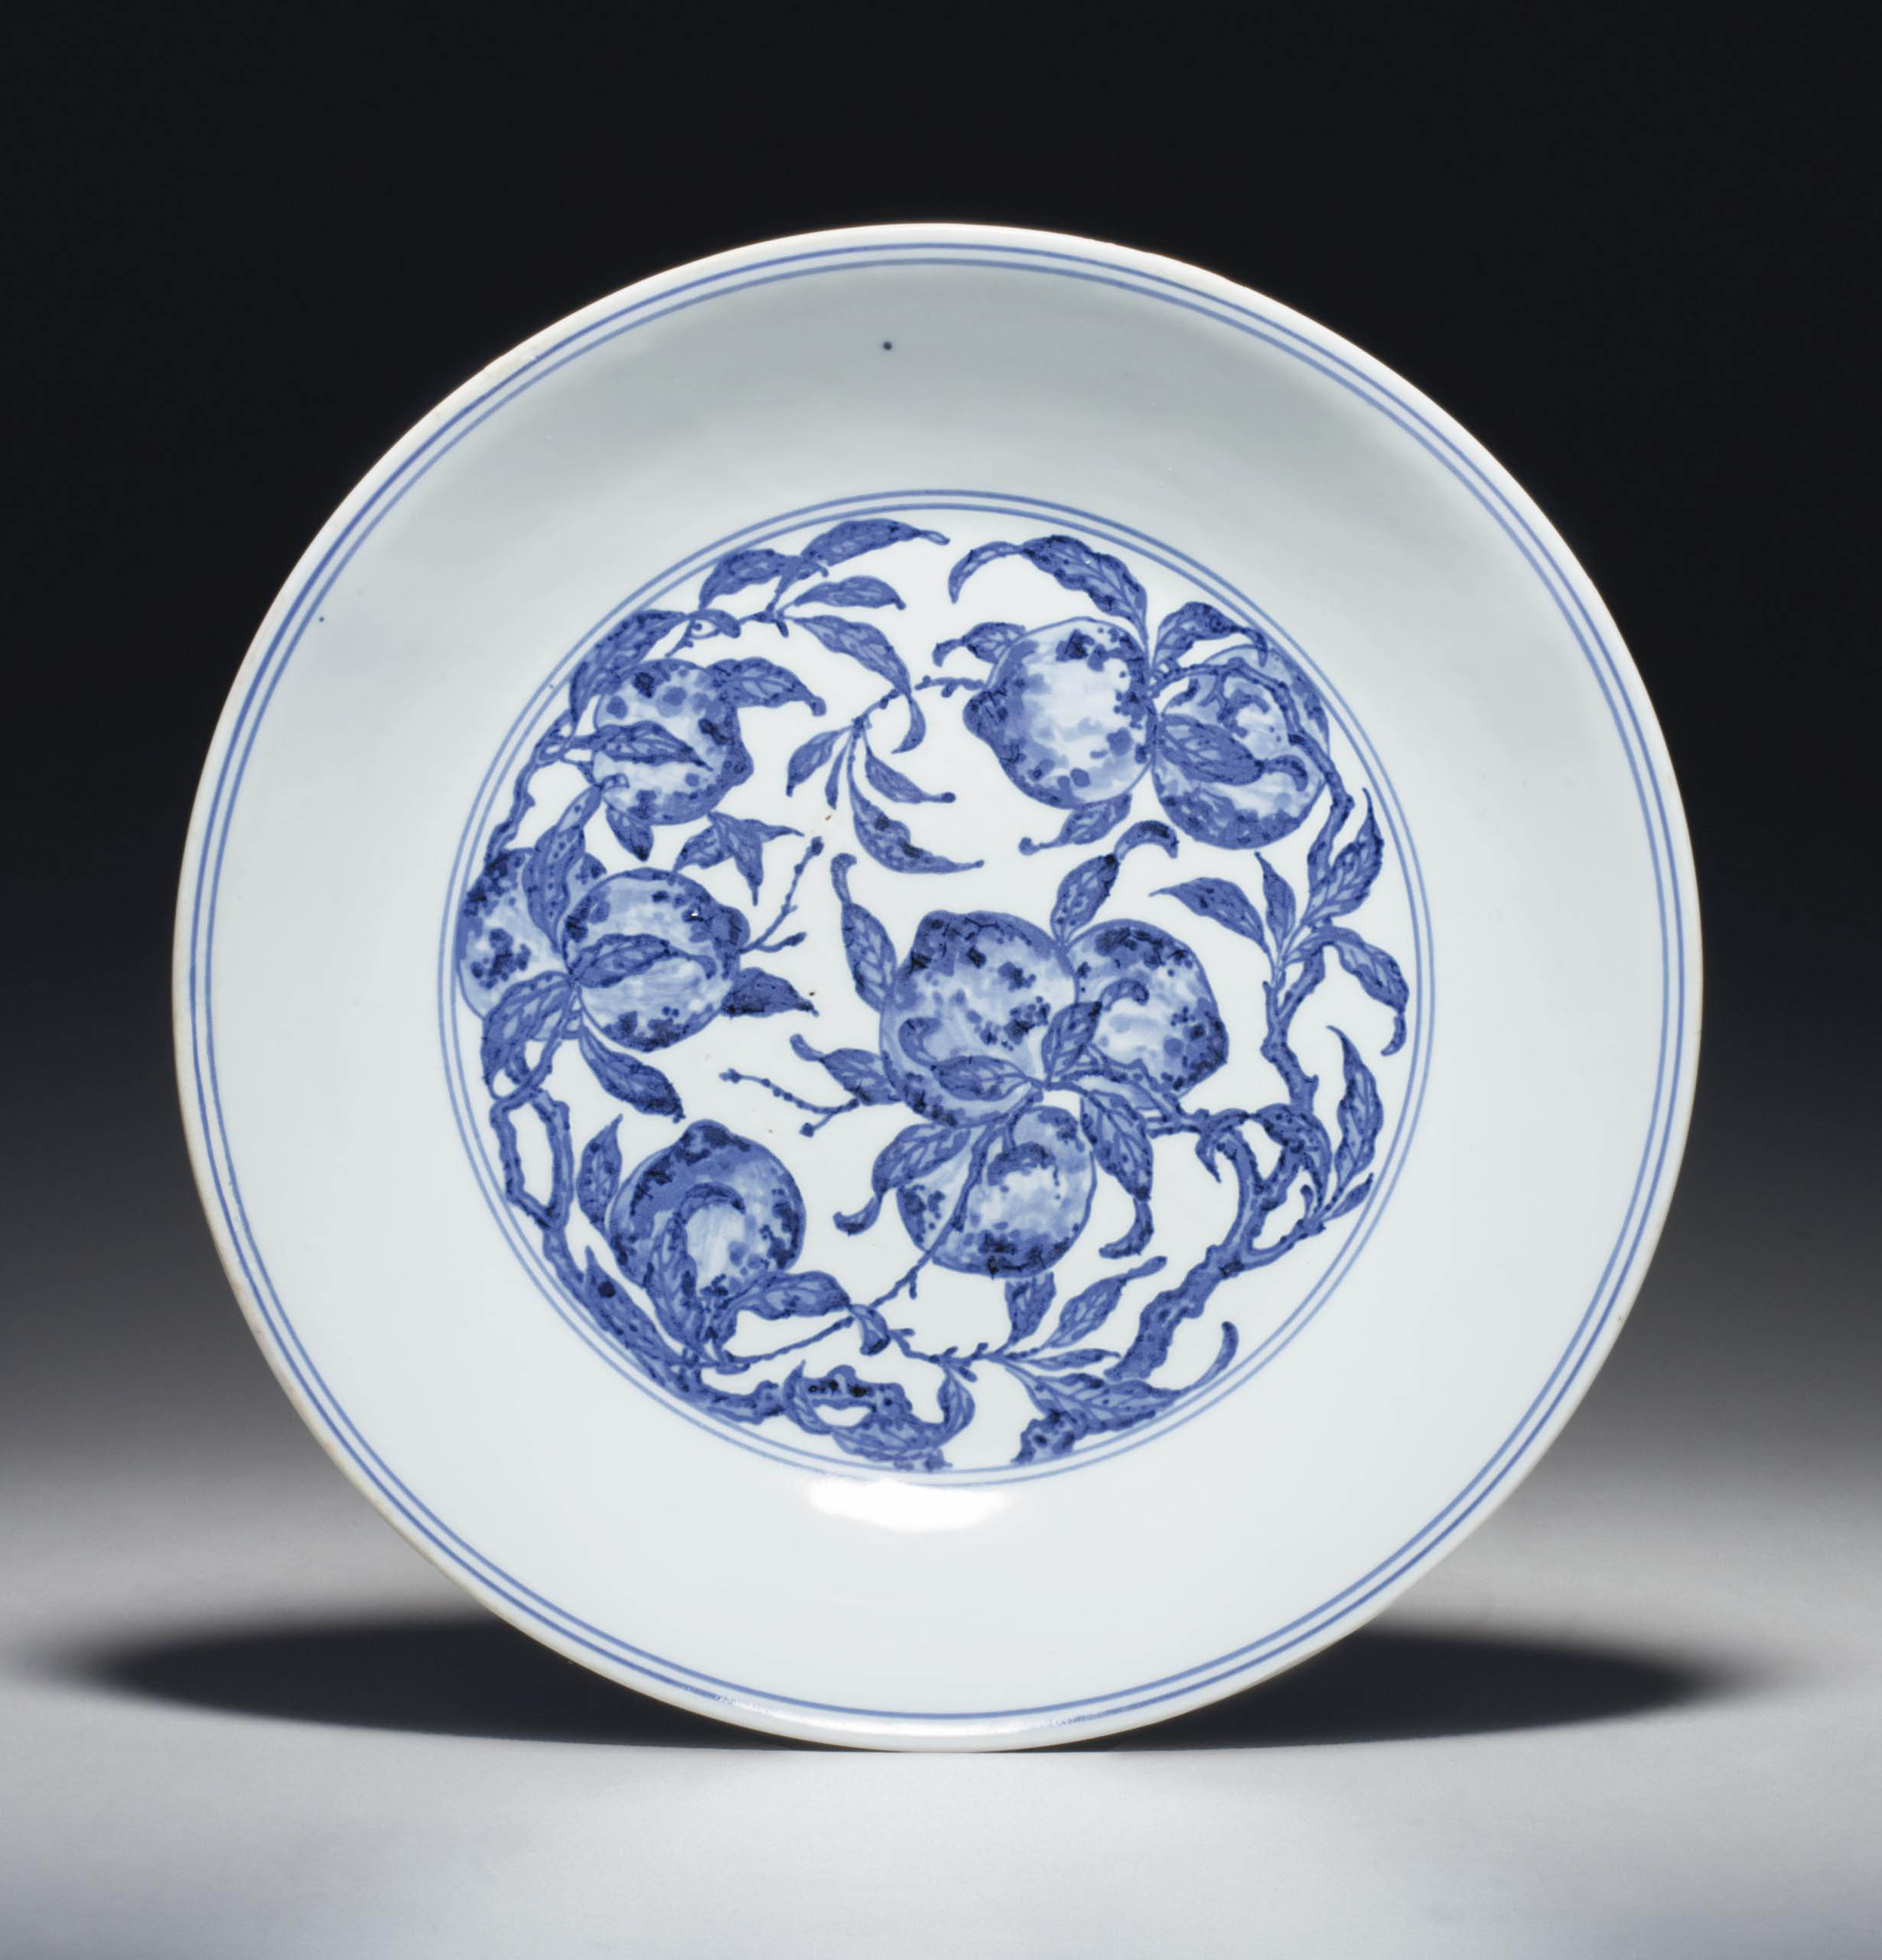 A MING-STYLE BLUE AND WHITE 'P